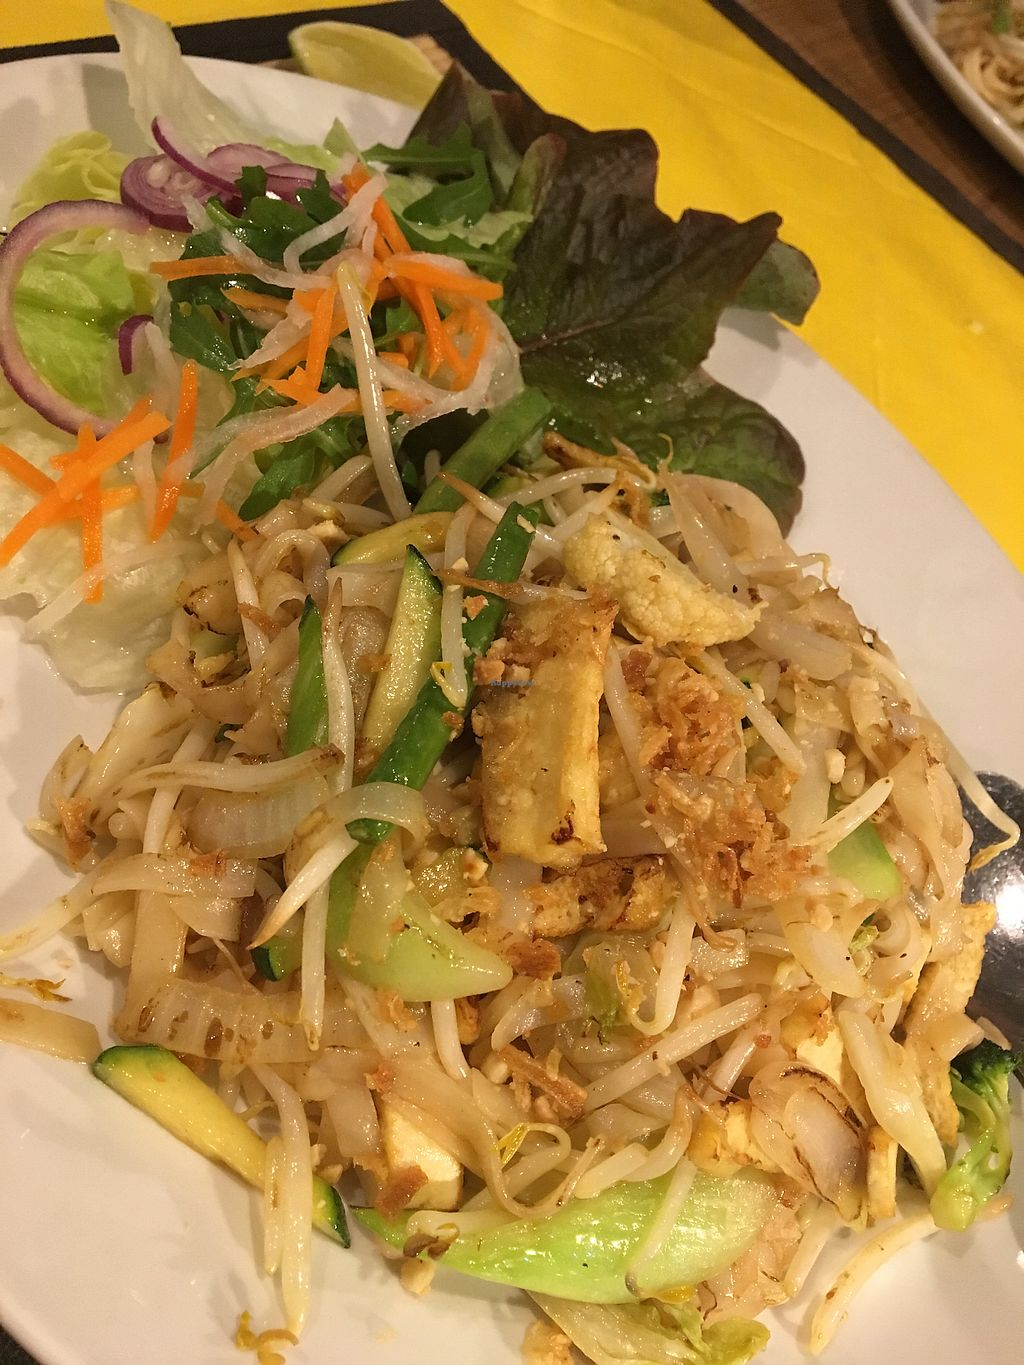 """Photo of Samadhi  by <a href=""""/members/profile/LaurenRobinson"""">LaurenRobinson</a> <br/>Pad Thai  <br/> February 26, 2018  - <a href='/contact/abuse/image/2933/364279'>Report</a>"""